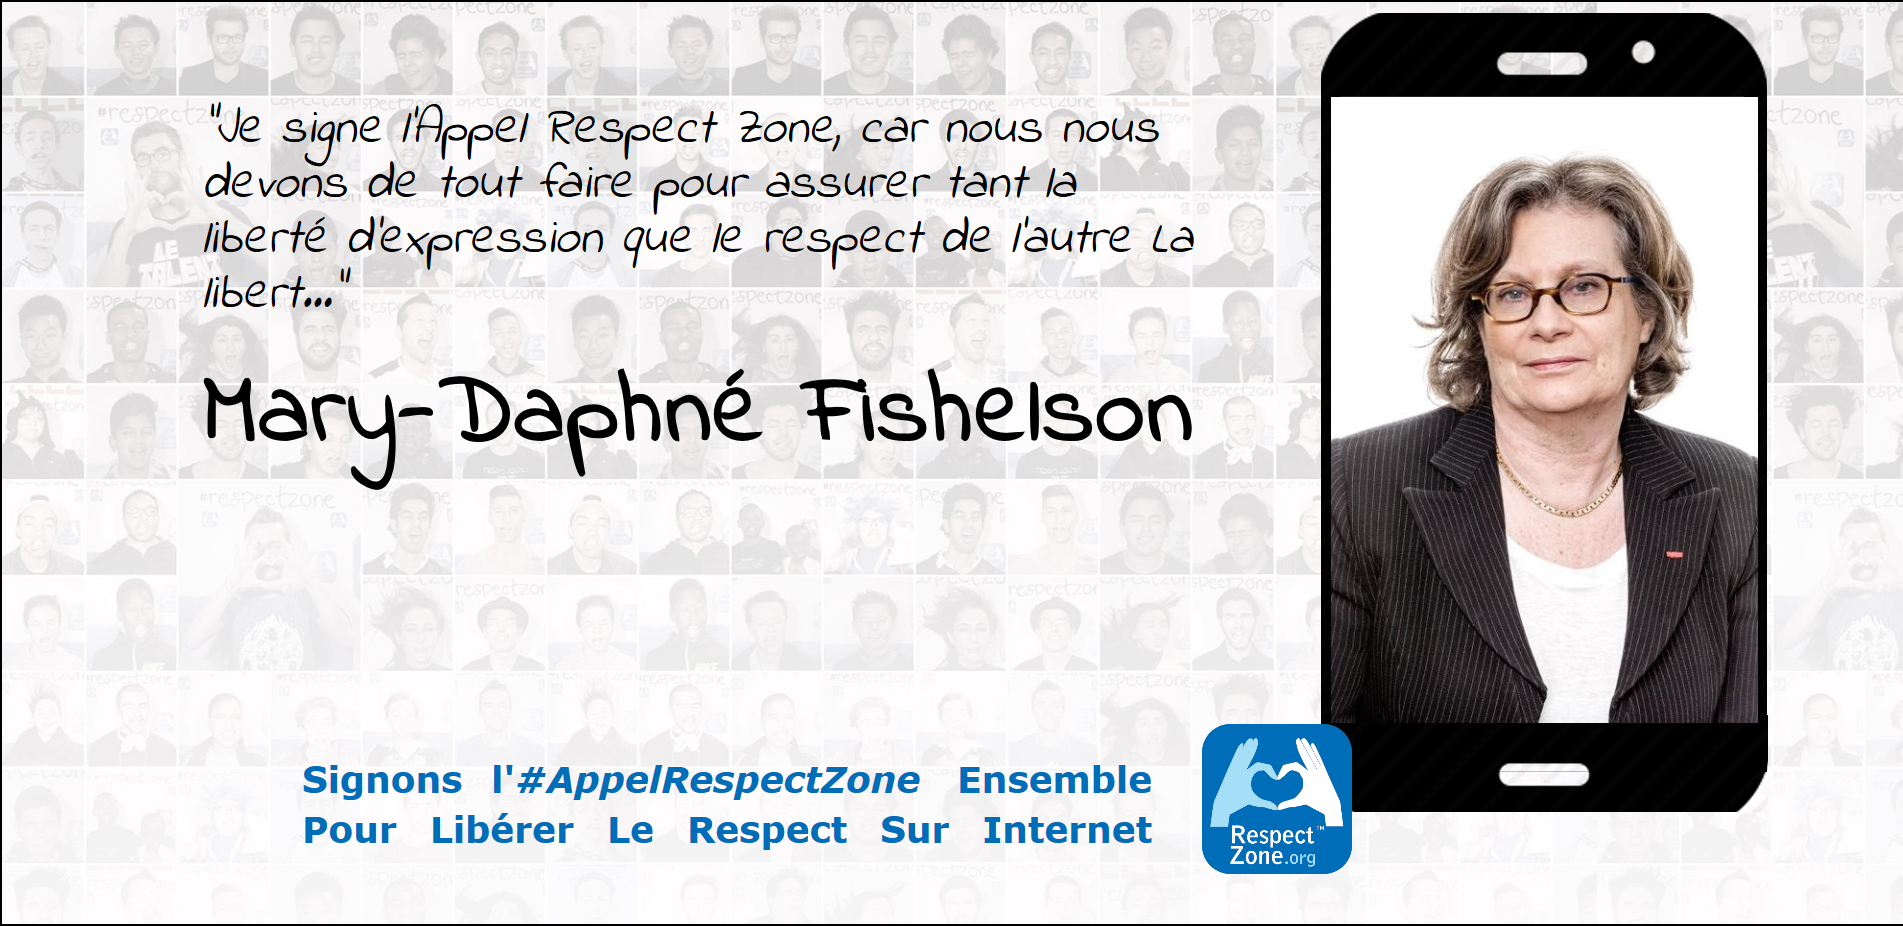 Mary-Daphné Fishelson